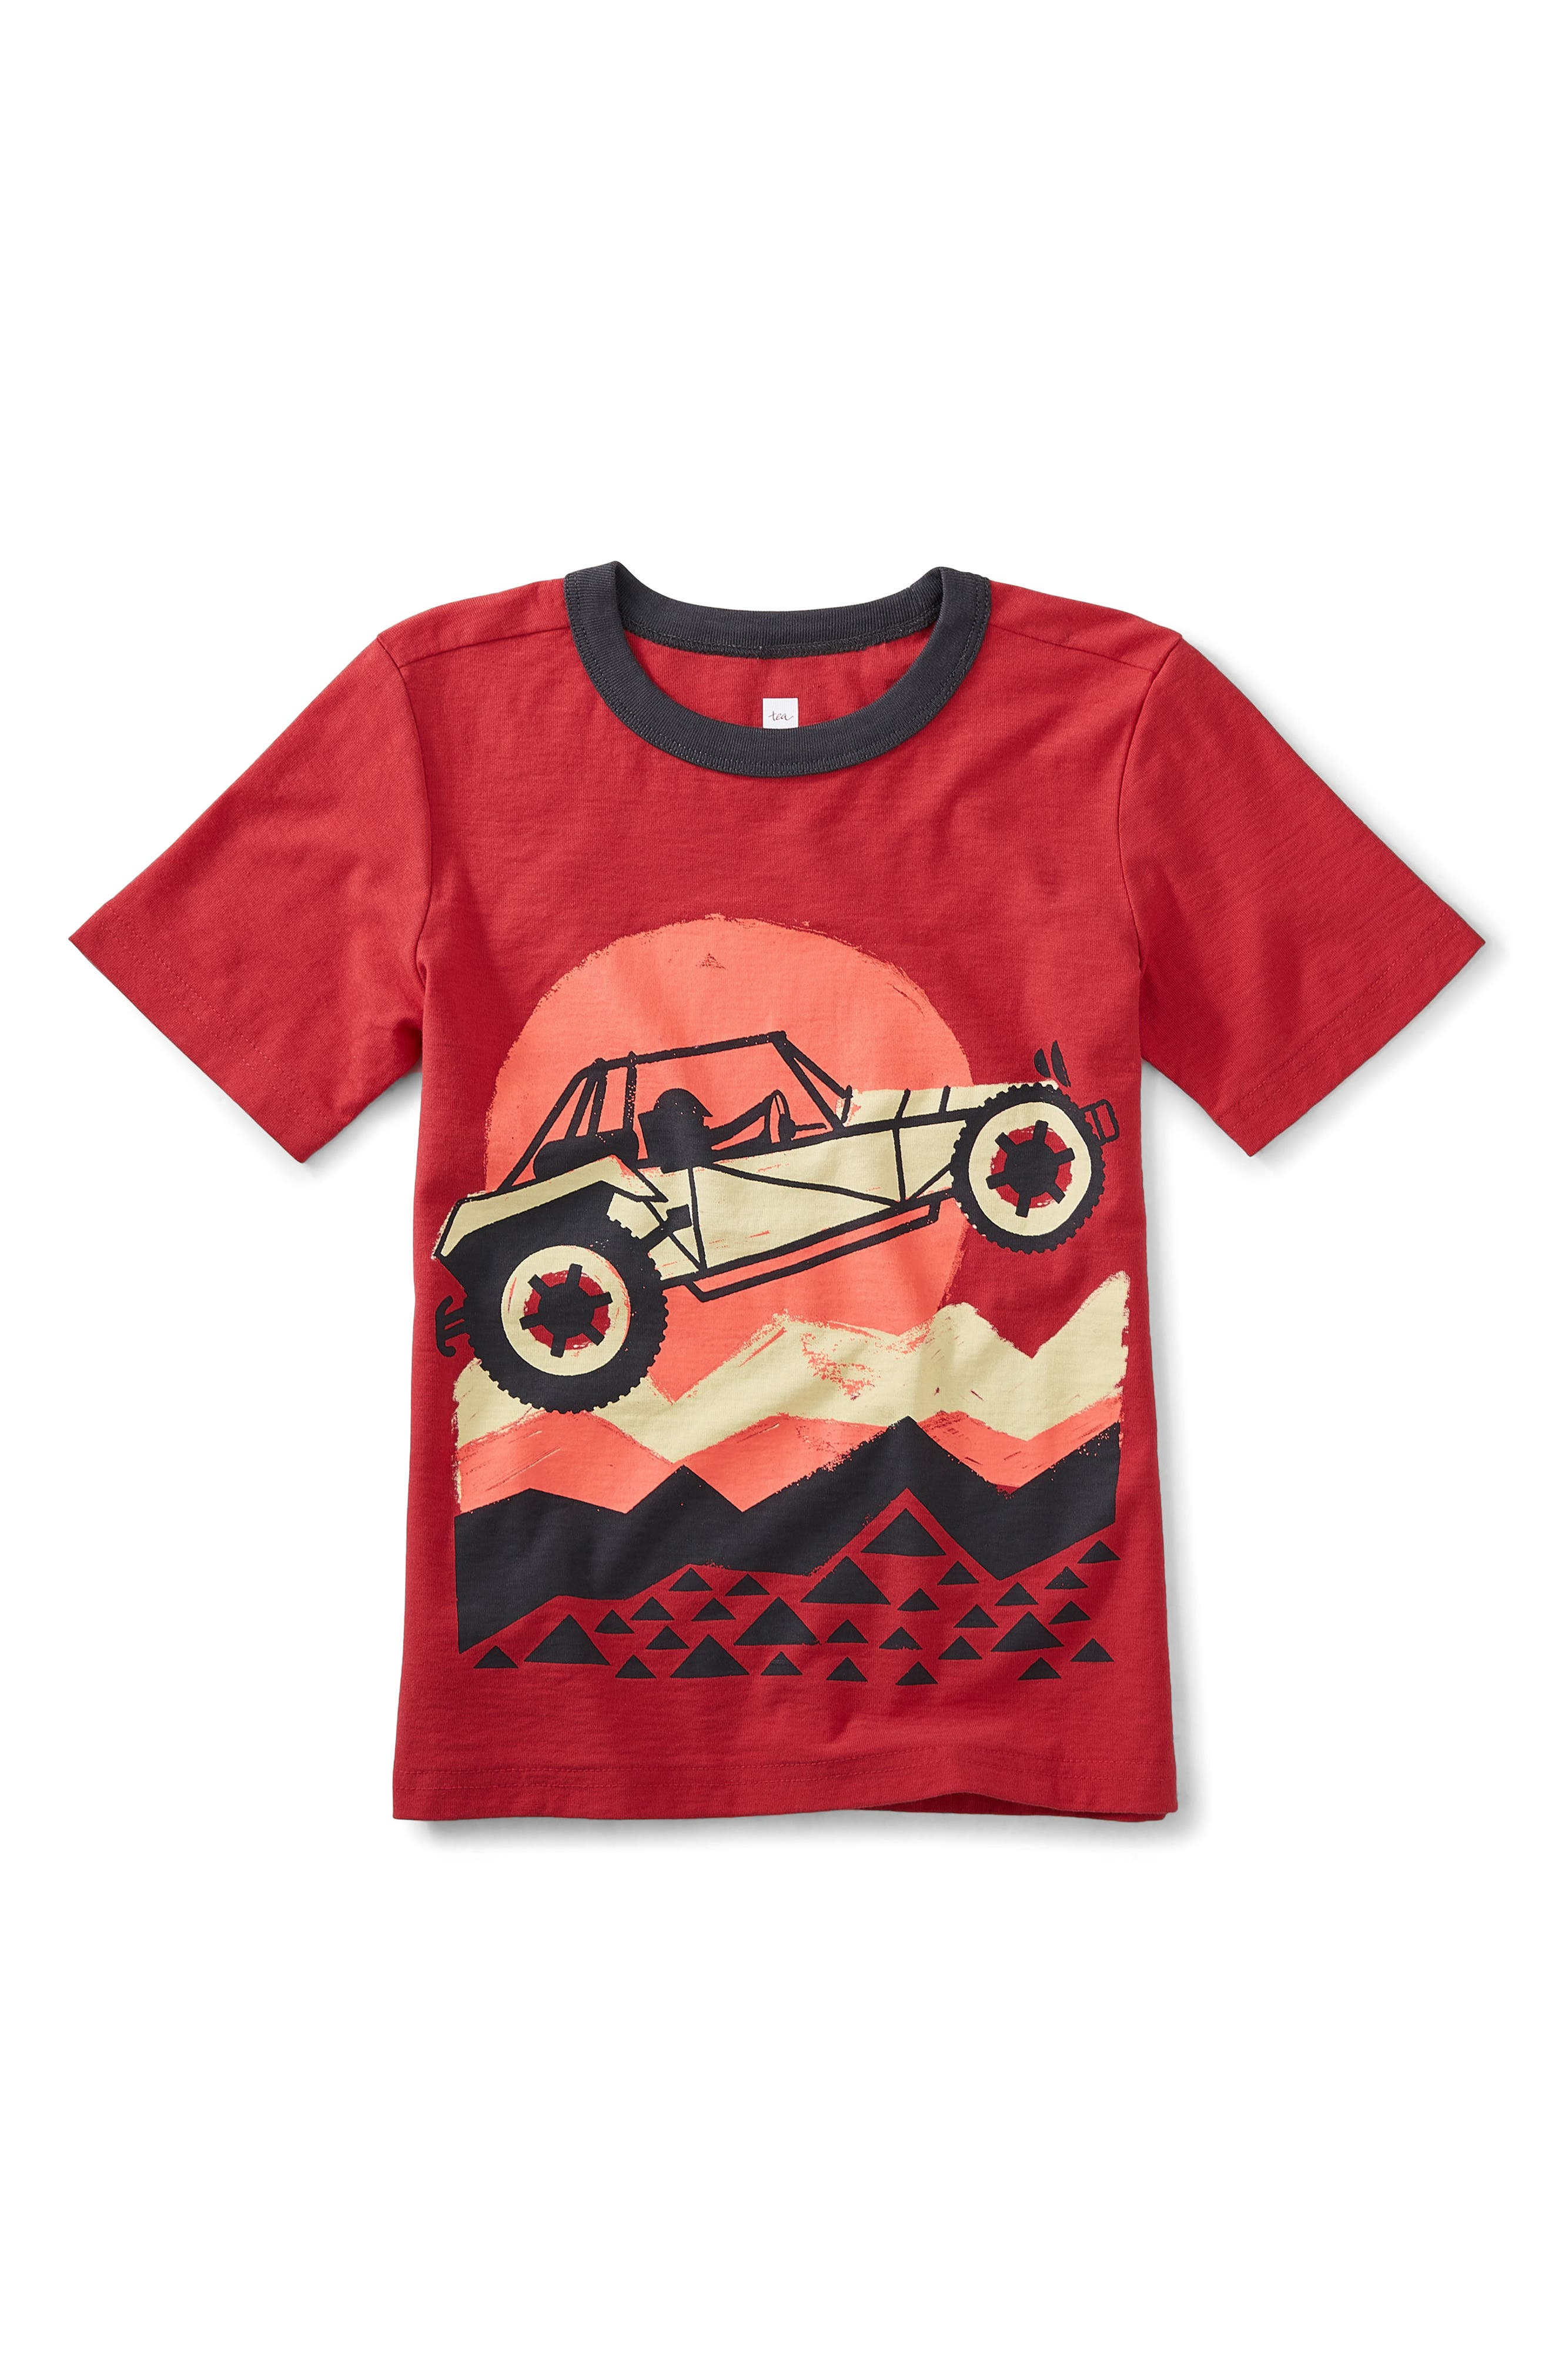 Dune Buggy Graphic T-Shirt,                             Main thumbnail 1, color,                             Cayenne